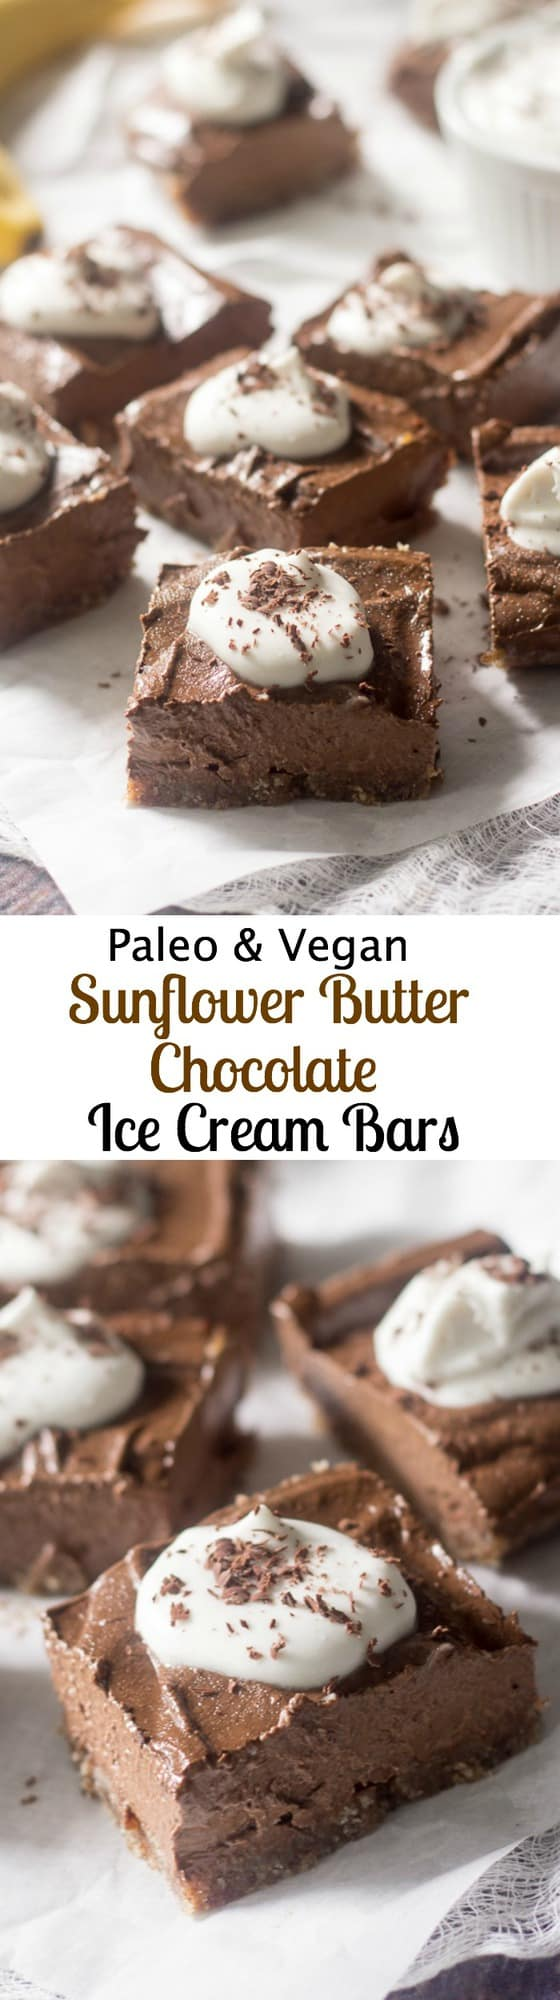 Sunflower butter banana chocolate ice cream bars on a pecan coconut crust - paleo and vegan!